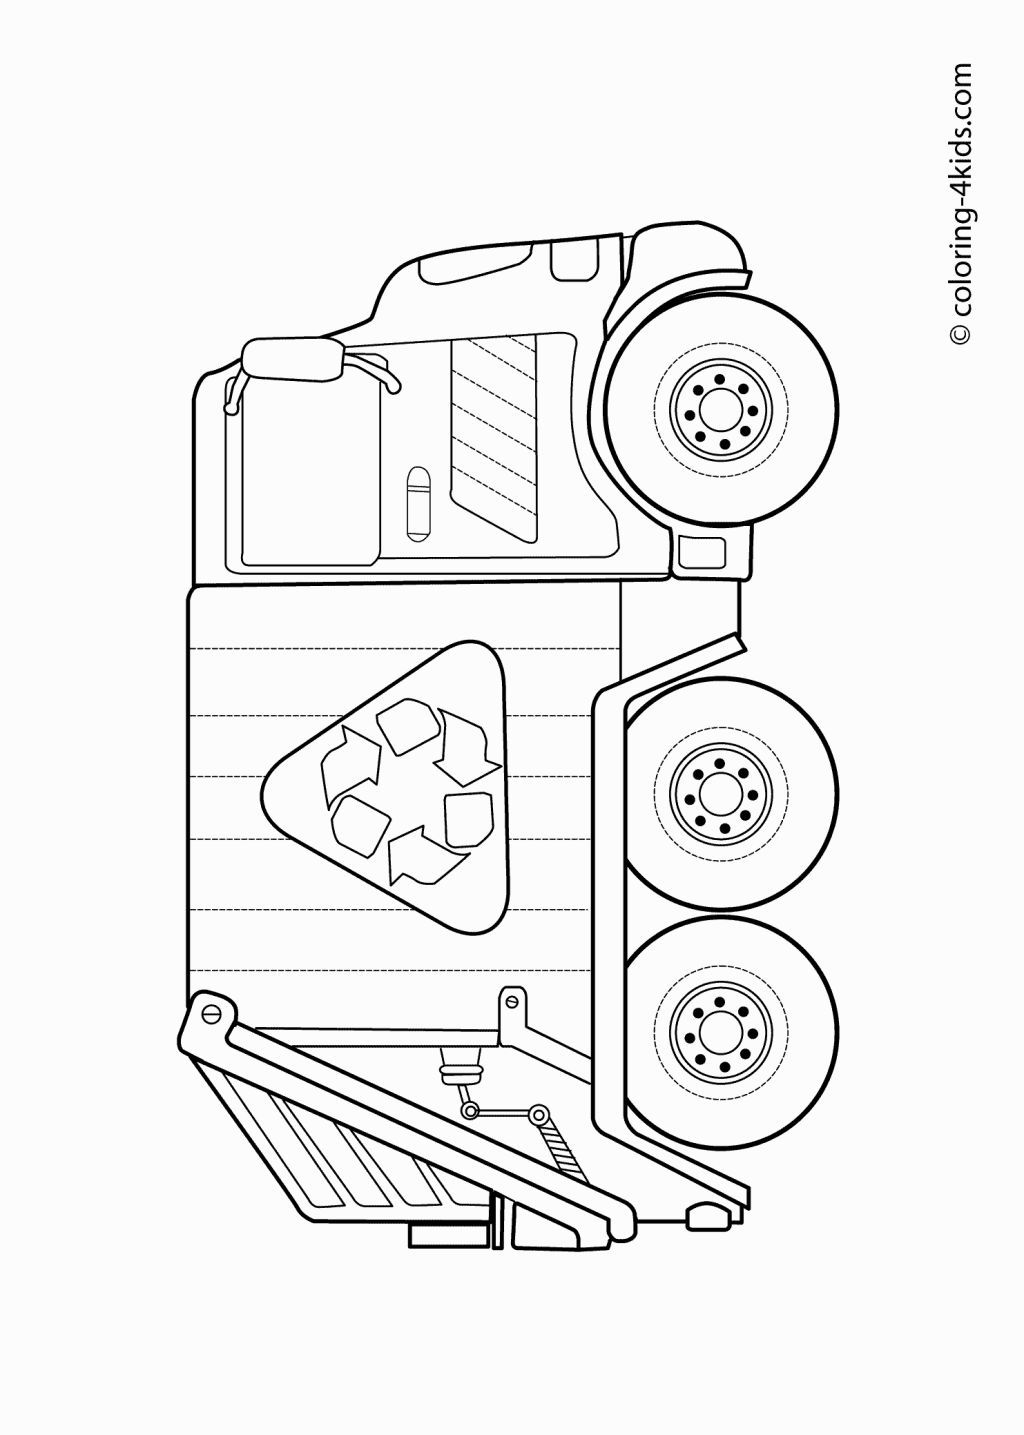 Garbage Truck Coloring Page  Rubbish truck, Garbage truck, Truck